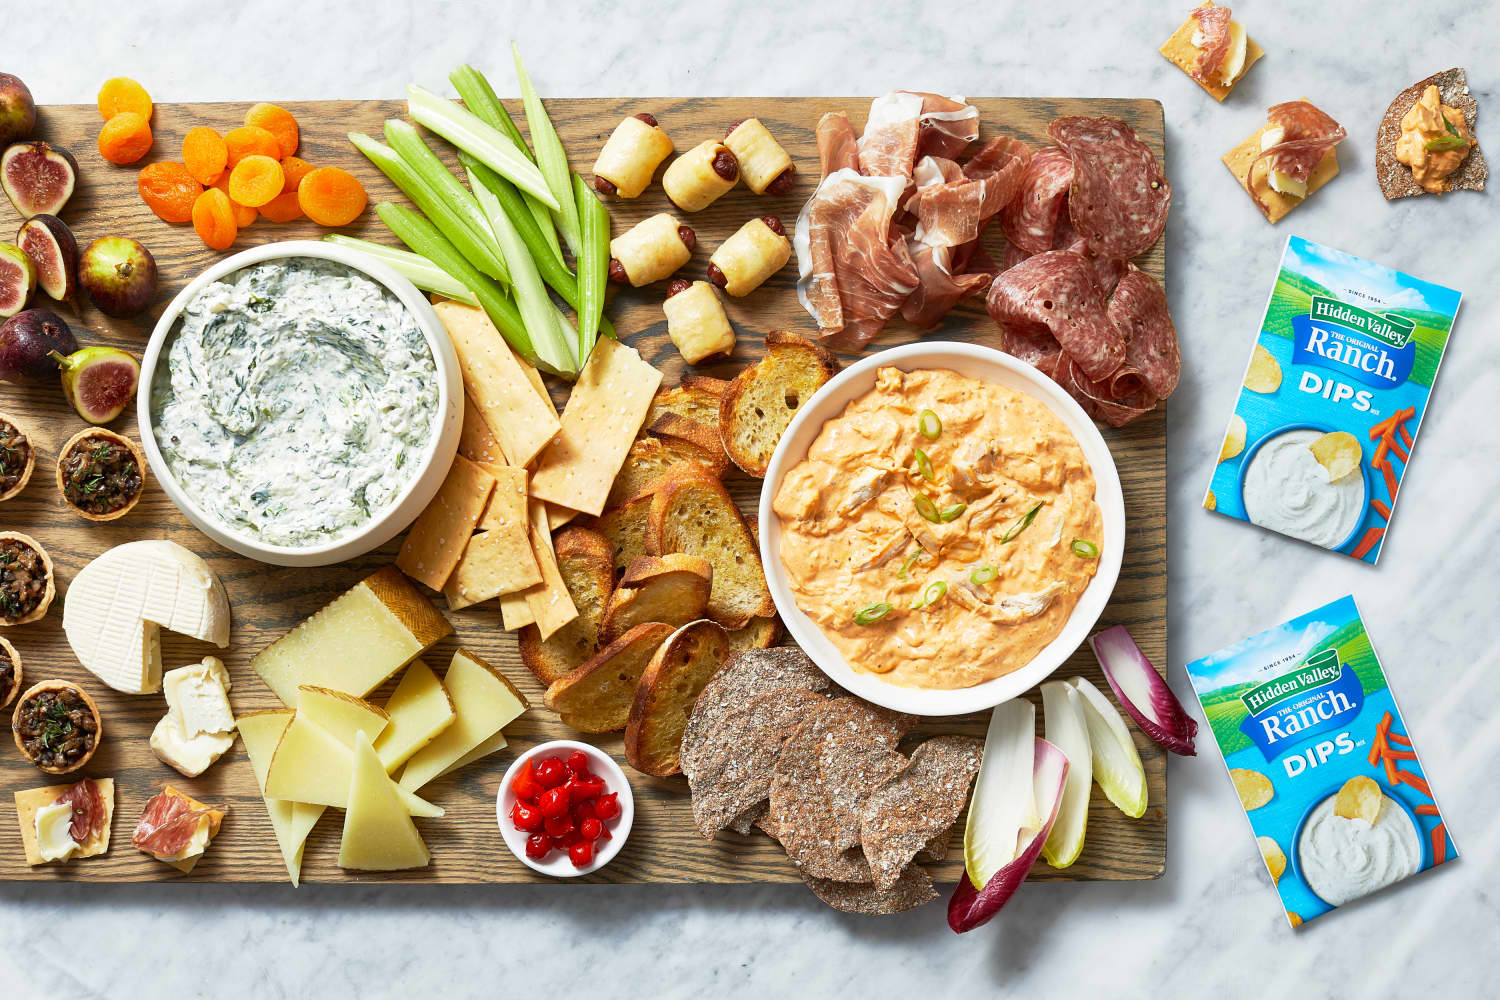 How to Build an Easy (But Still Impressive!) Snack Board